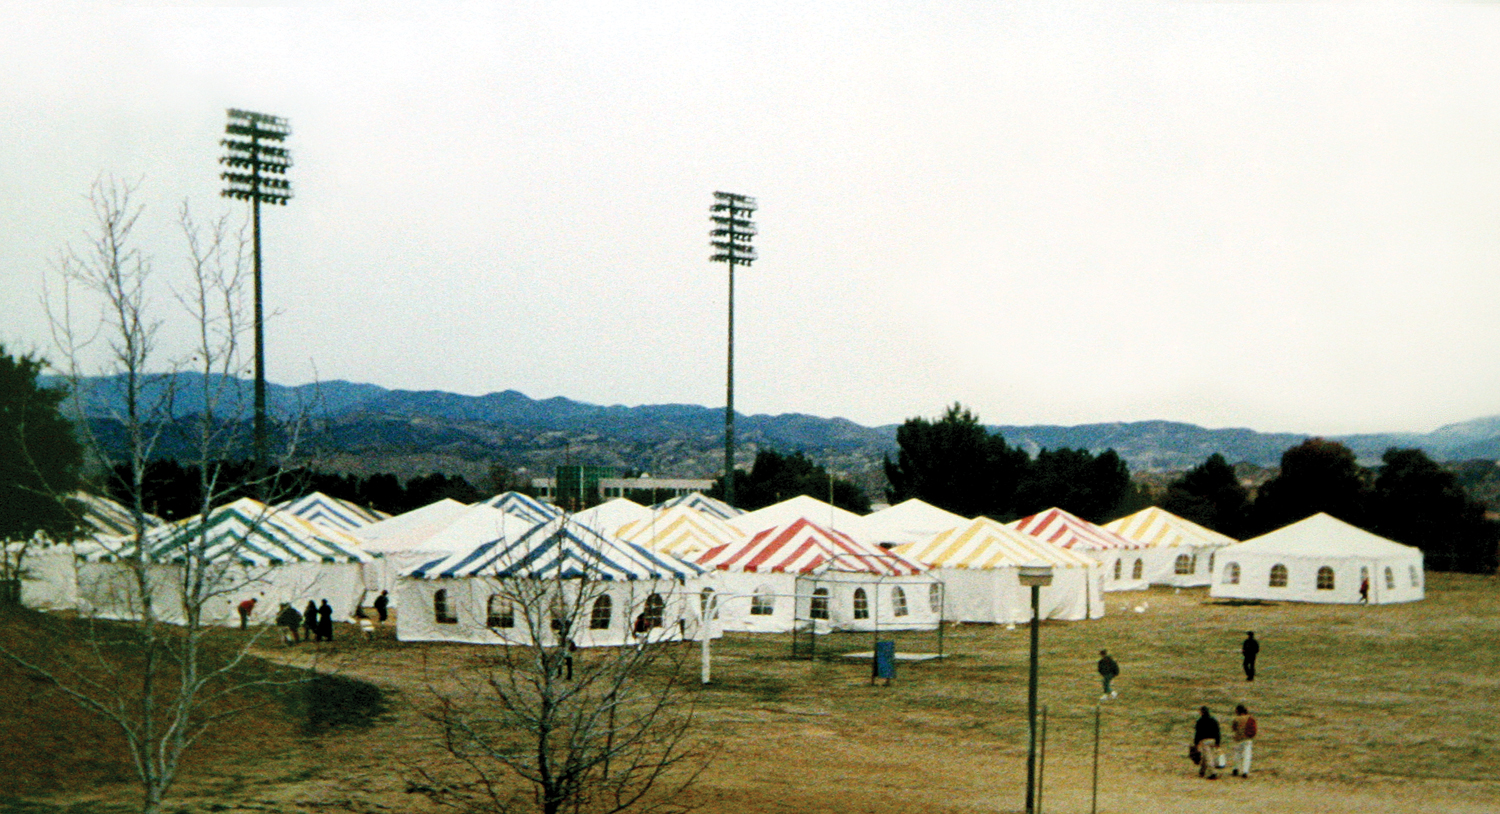 Tent classrooms following the 1994 earthquake